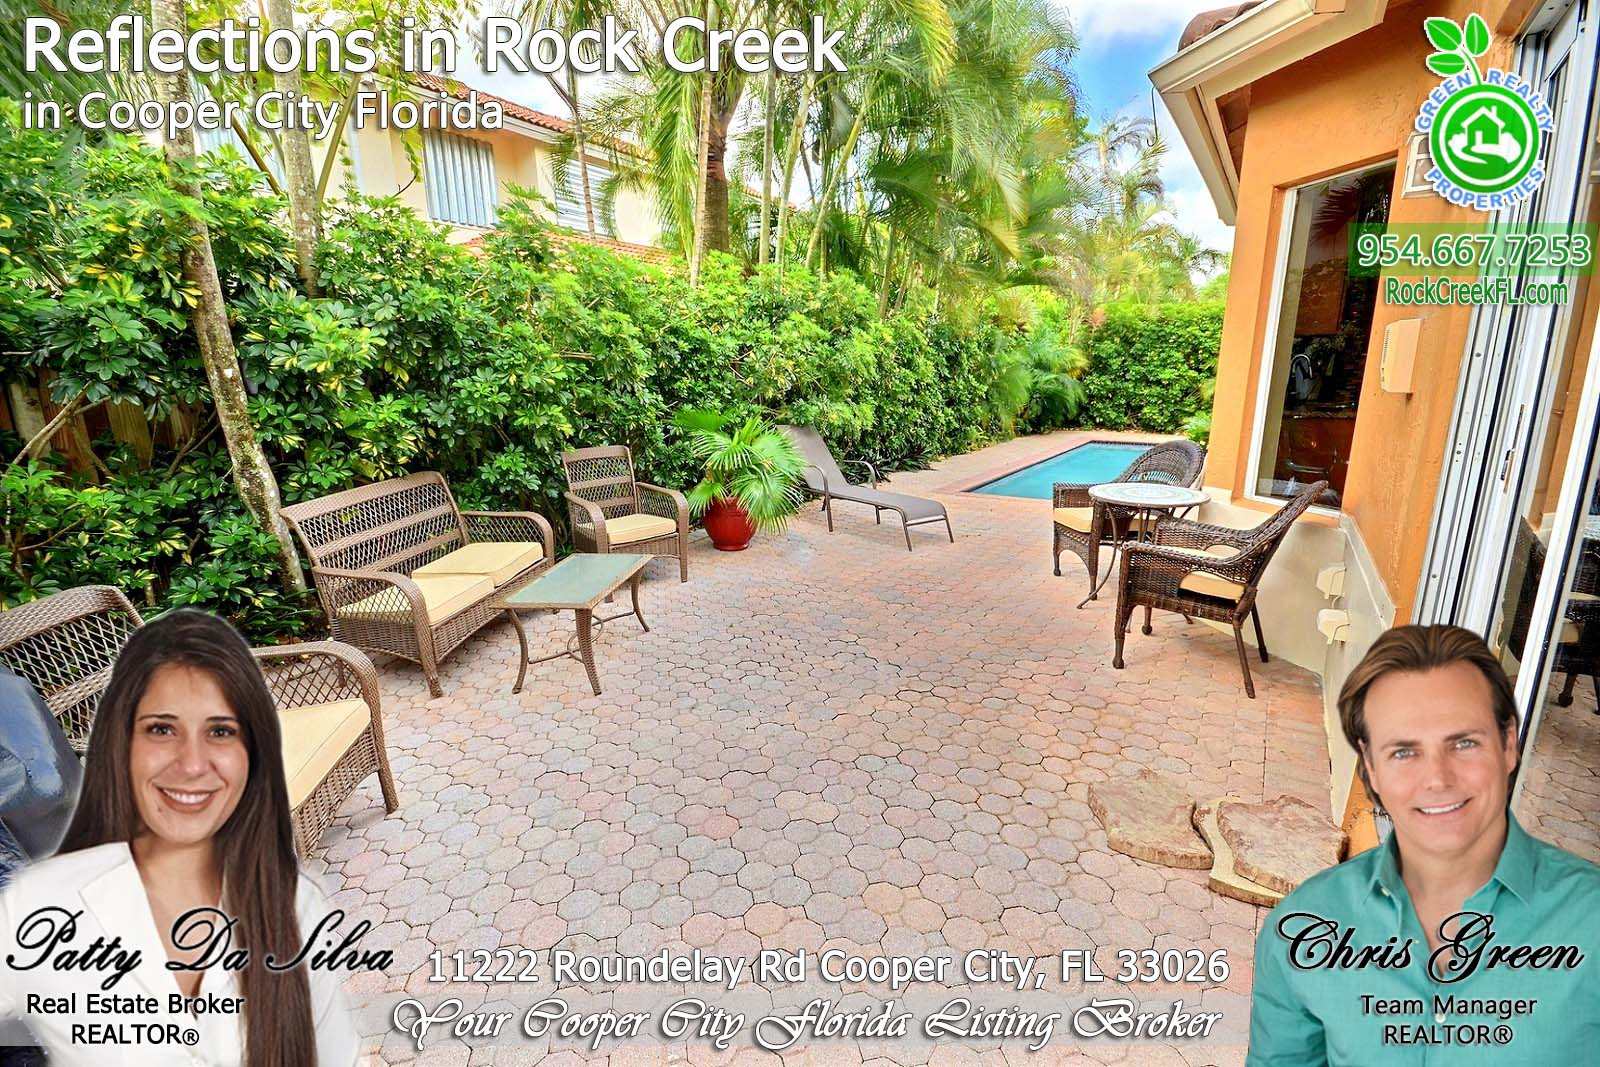 Cooper City Homes For Sale - Reflections in Rock Creek Homes Fo Sale (8)